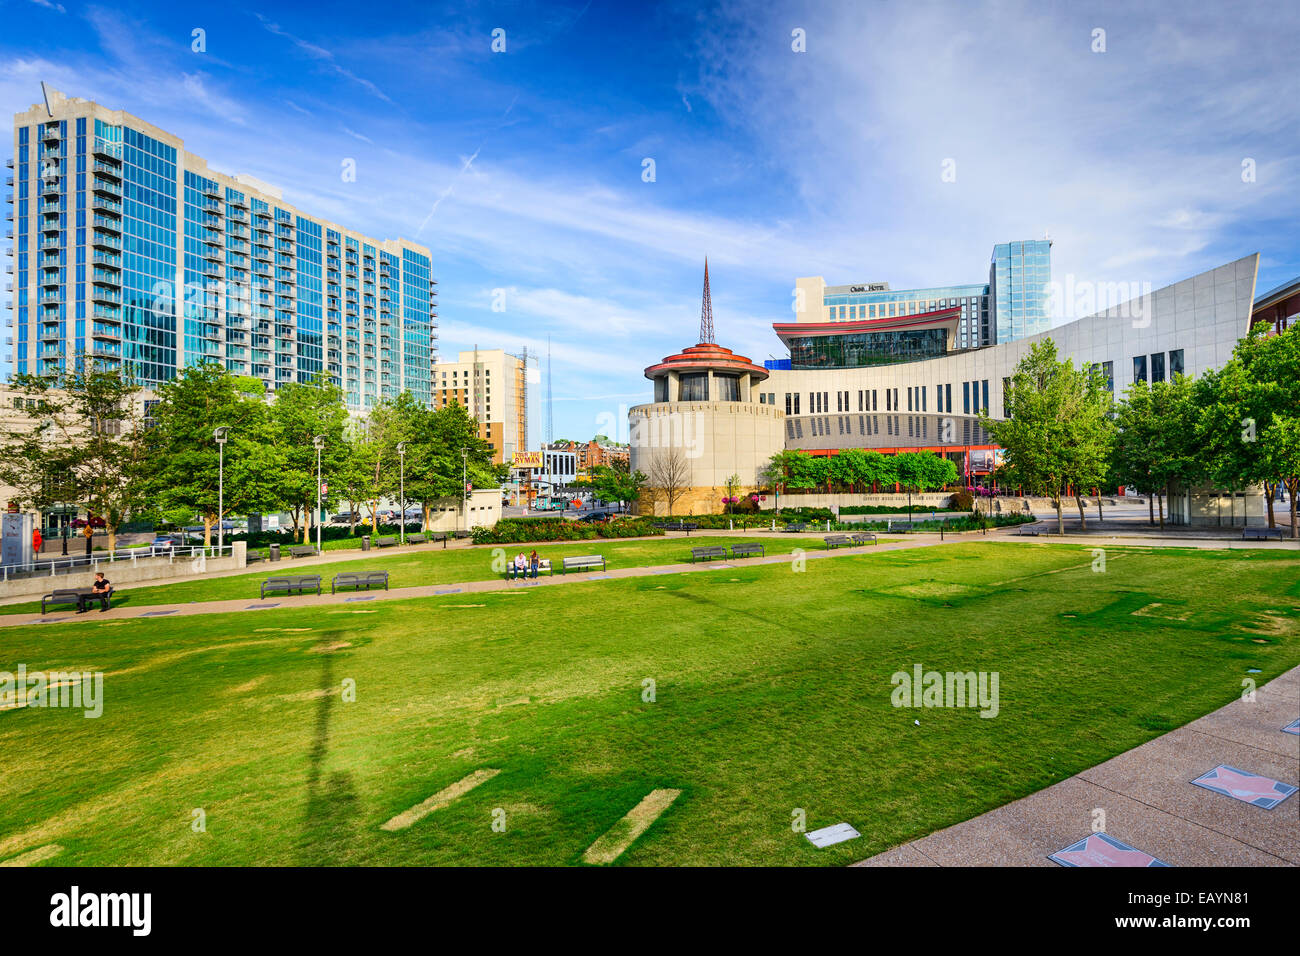 Country Music Hall of Fame viewed from Music City Walk of Fame Park. - Stock Image